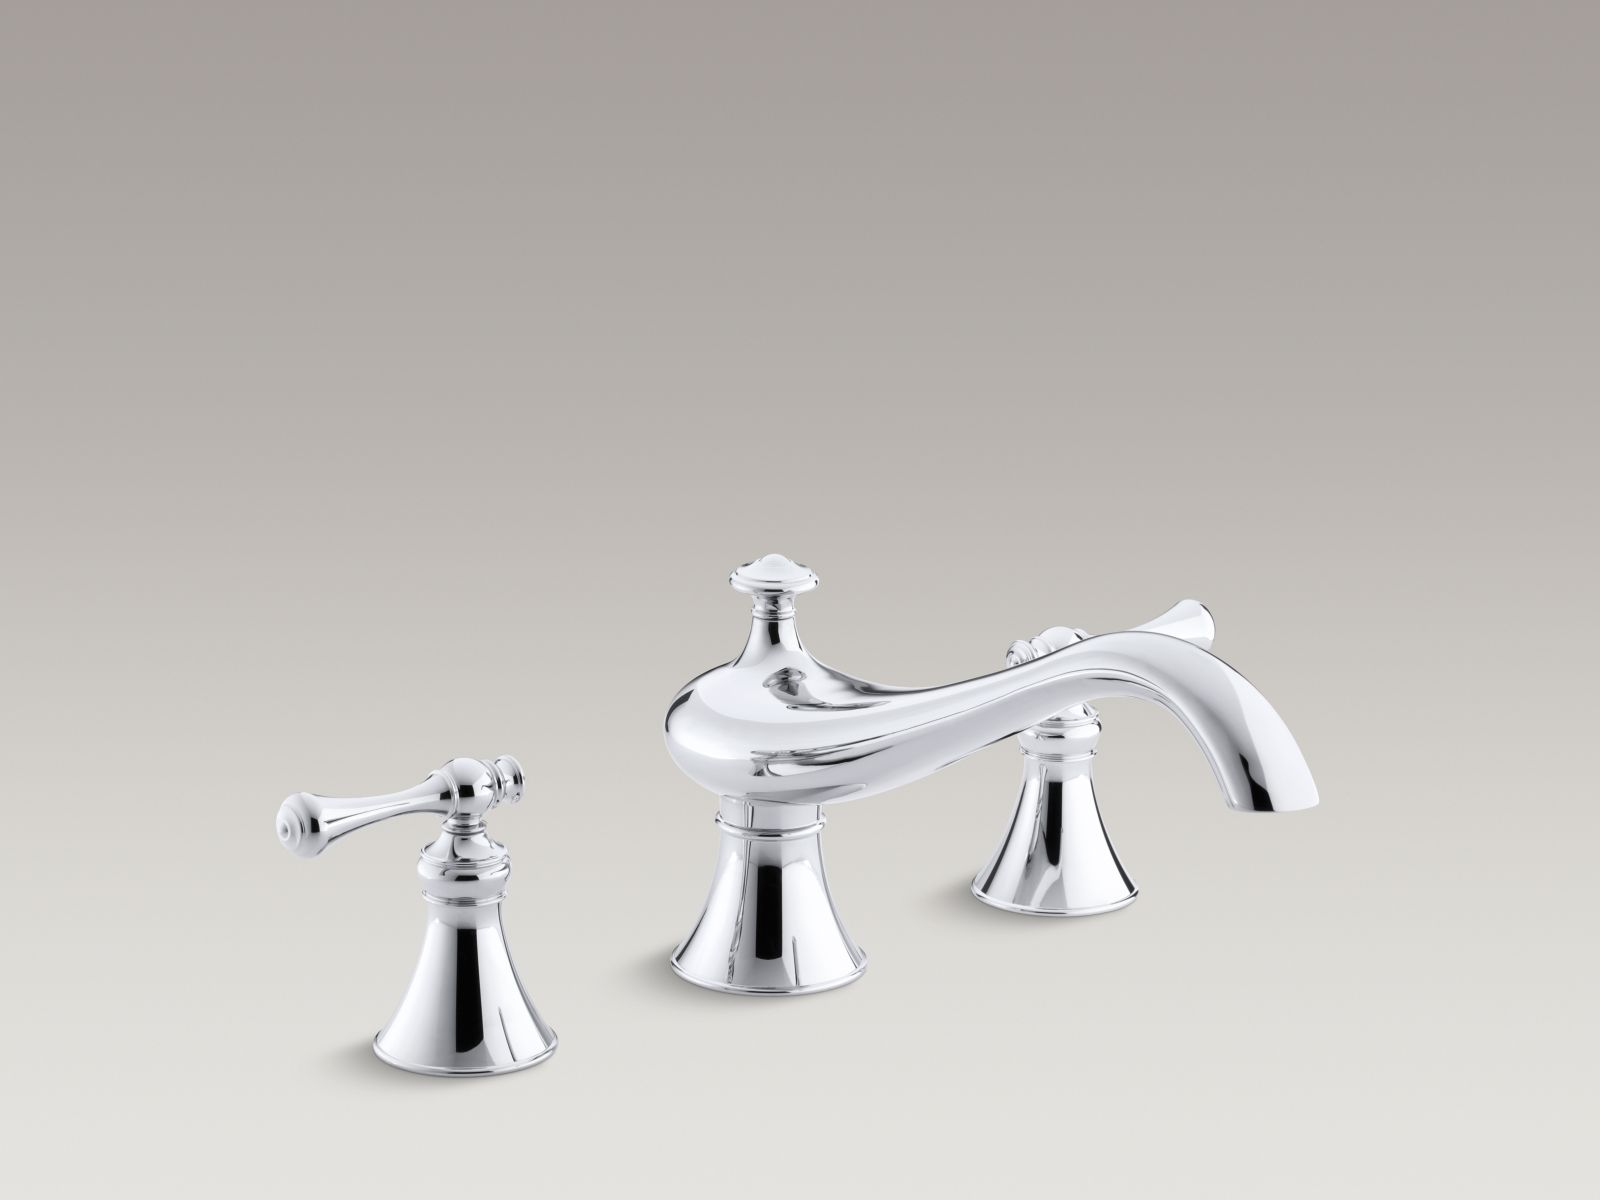 "Kohler Revival® K-T16119-4A-CP Deck-mount bath faucet trim for high-flow valve with 9-5/8"" spout, traditional lever handles, valve not included Polished Chrome"